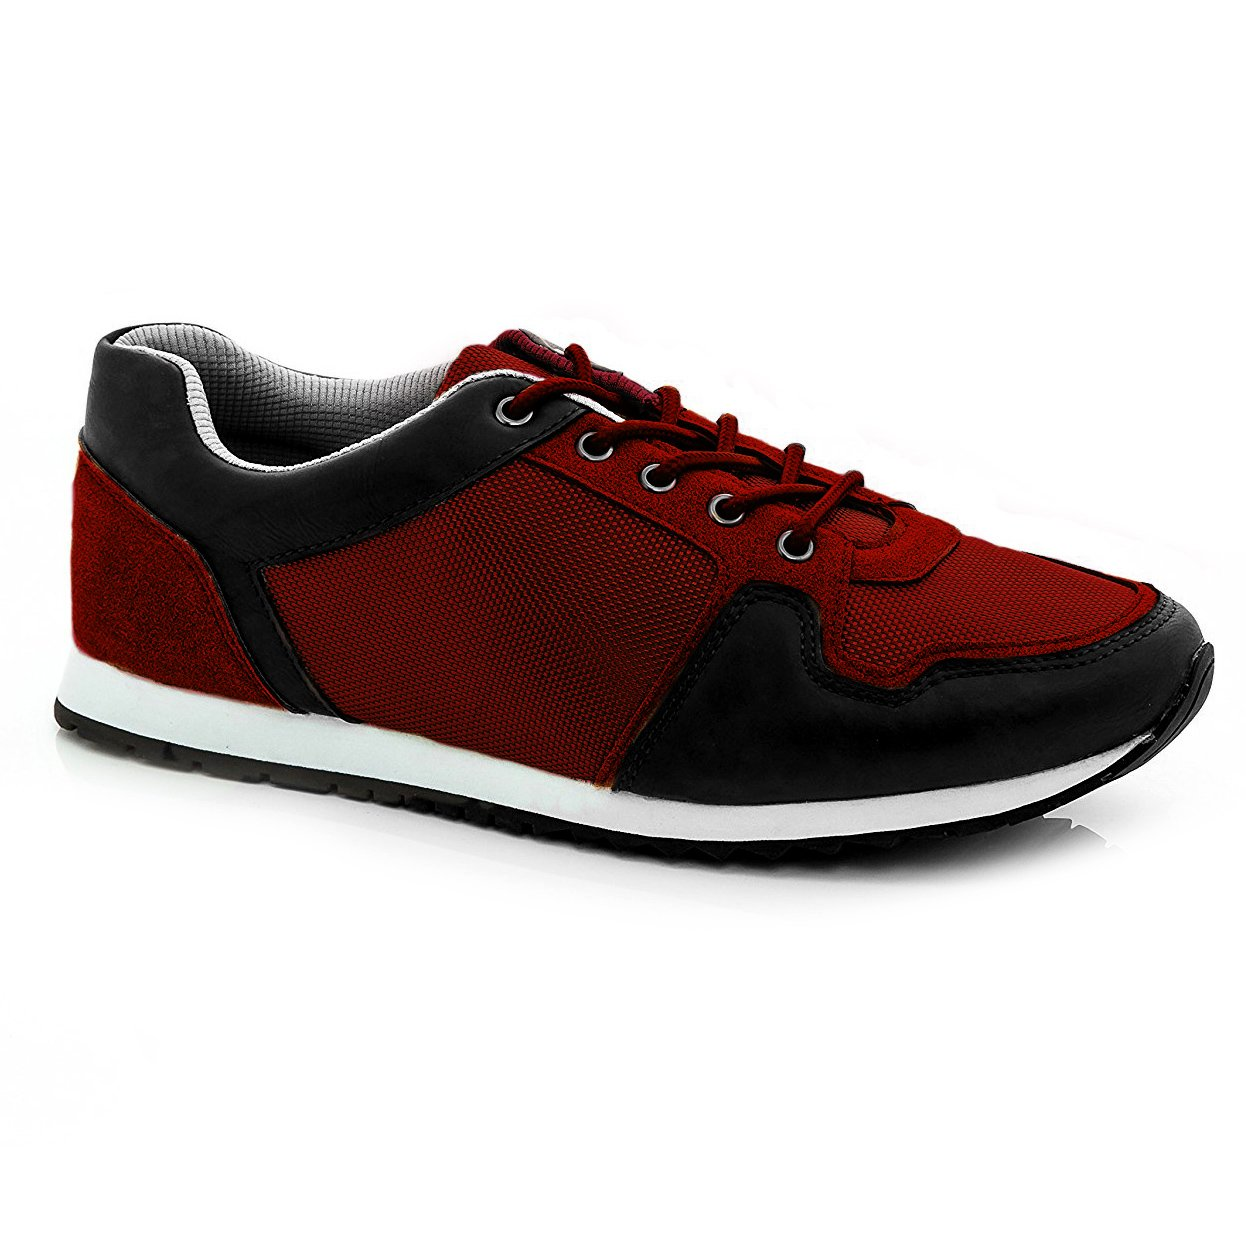 Franco Vanucci Mens 9994 Lace Up Sneakers Black We Size 10.5 by Franco Vanucci